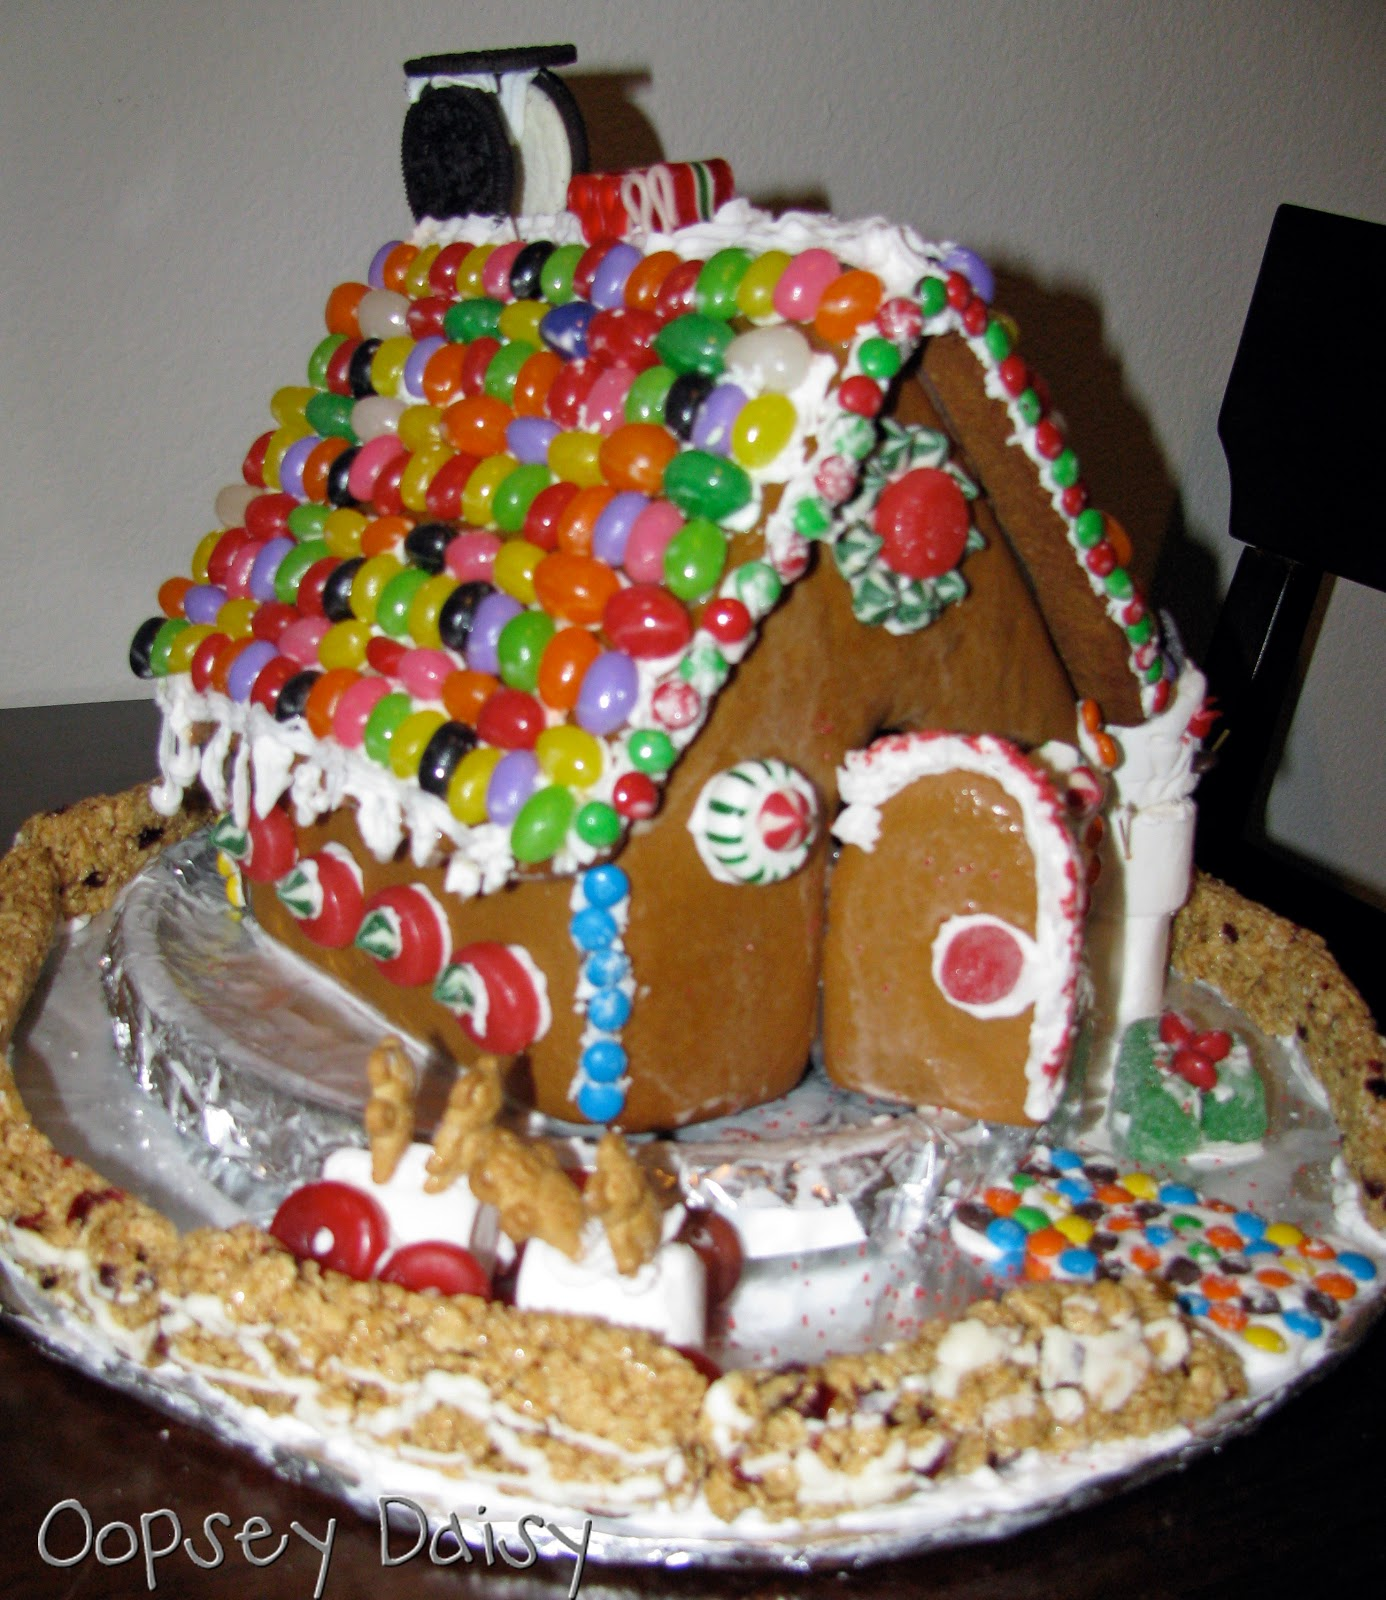 gingerbread house | Oopsey Daisy